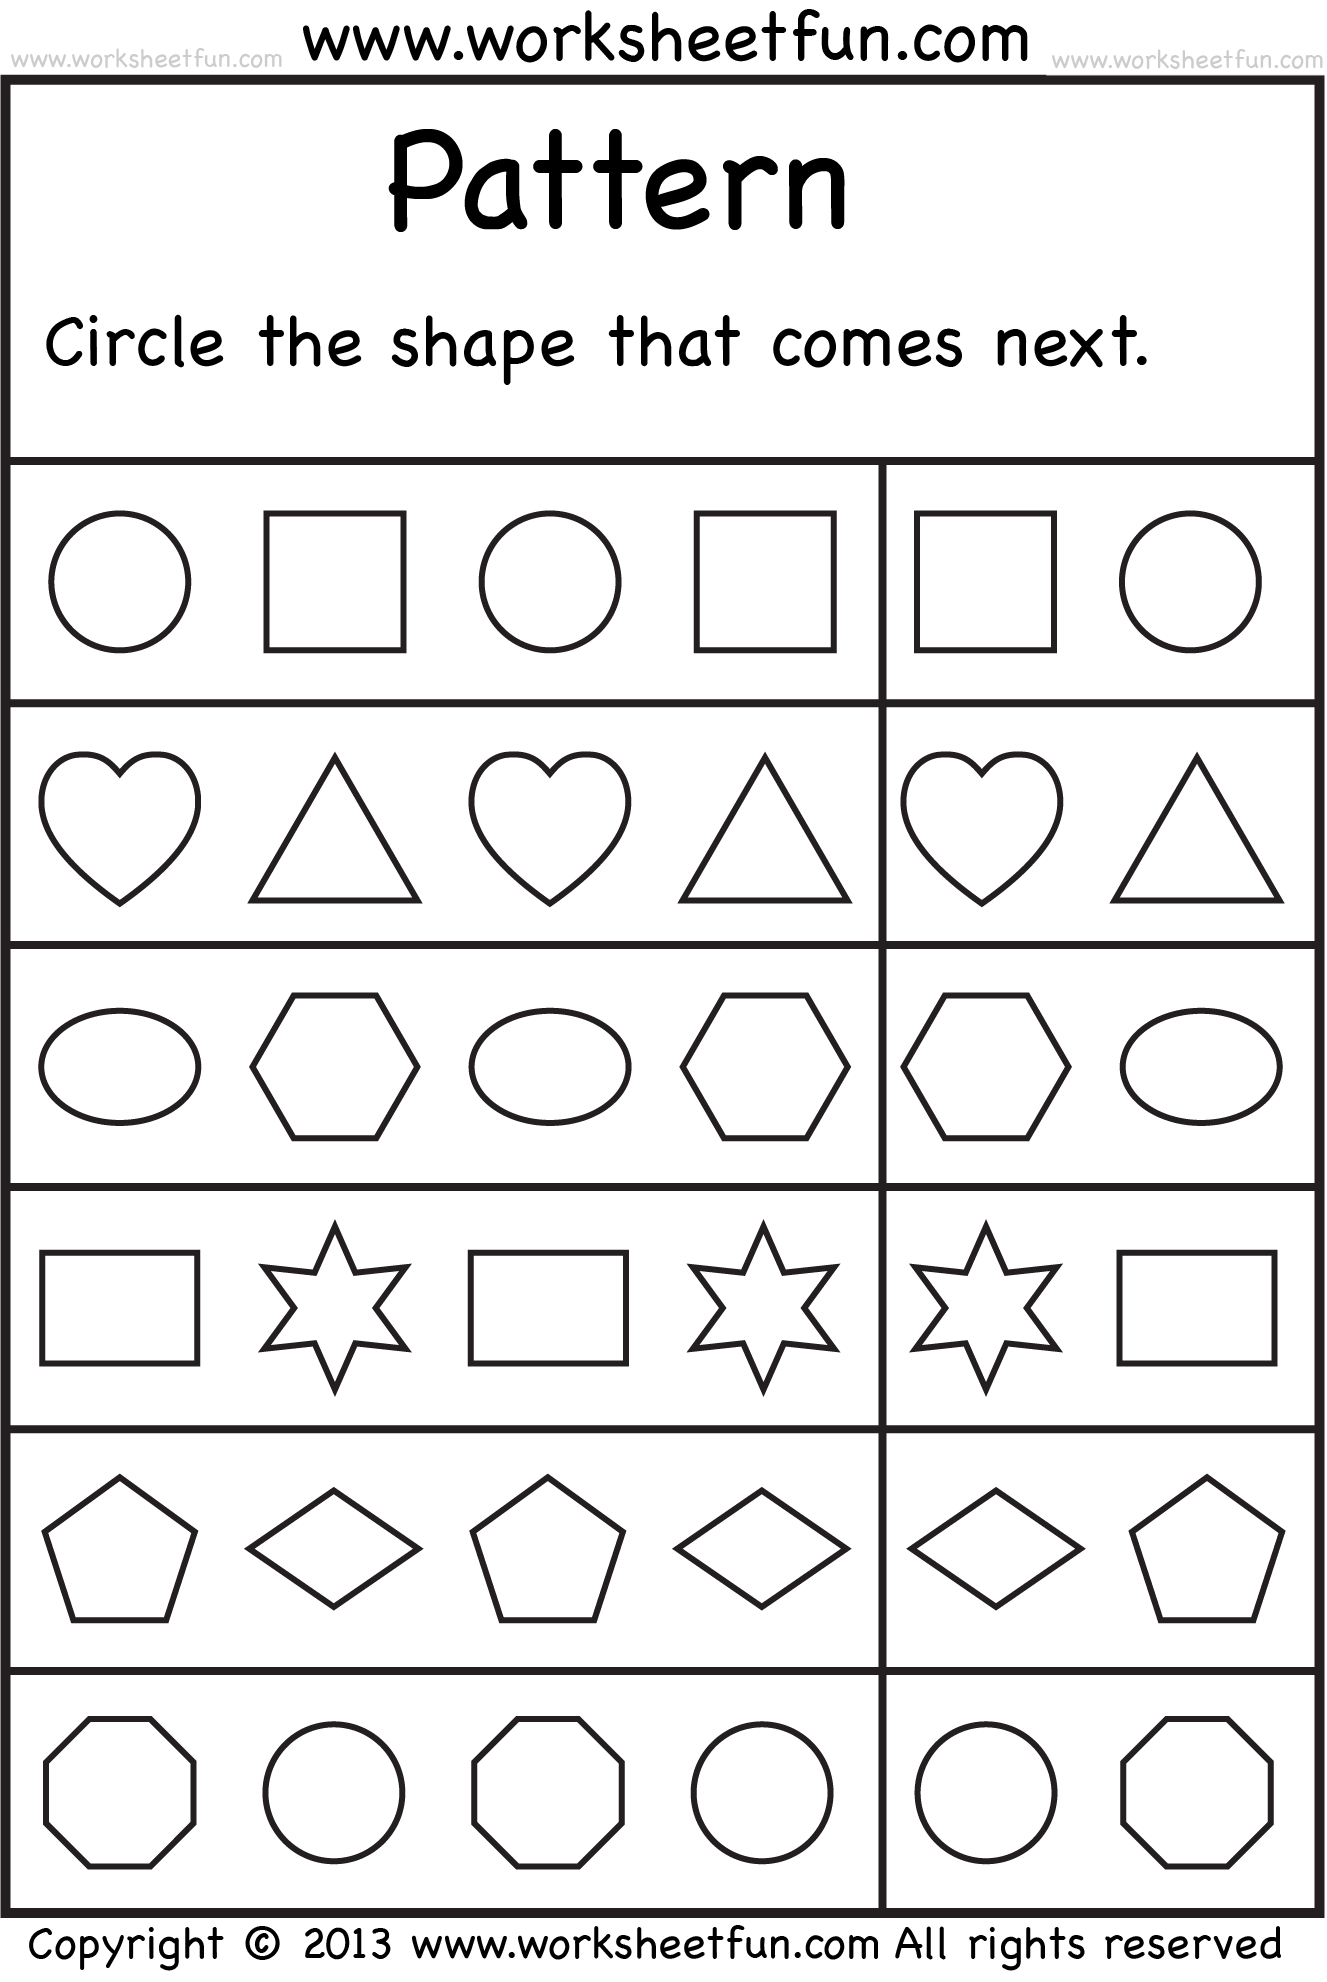 Weirdmailus  Unique  Images About School Worksheets On Pinterest  Number Words  With Engaging  Images About School Worksheets On Pinterest  Number Words Alphabet Worksheets And Free Printable Kindergarten Worksheets With Comely Worksheet On Commas Also Possessive Pronouns Worksheet Rd Grade In Addition Balancing Chemical Equations Worksheet Easy And Map Practice Worksheets As Well As Mixed Operations Math Worksheets Additionally Excel Split Worksheet From Pinterestcom With Weirdmailus  Engaging  Images About School Worksheets On Pinterest  Number Words  With Comely  Images About School Worksheets On Pinterest  Number Words Alphabet Worksheets And Free Printable Kindergarten Worksheets And Unique Worksheet On Commas Also Possessive Pronouns Worksheet Rd Grade In Addition Balancing Chemical Equations Worksheet Easy From Pinterestcom